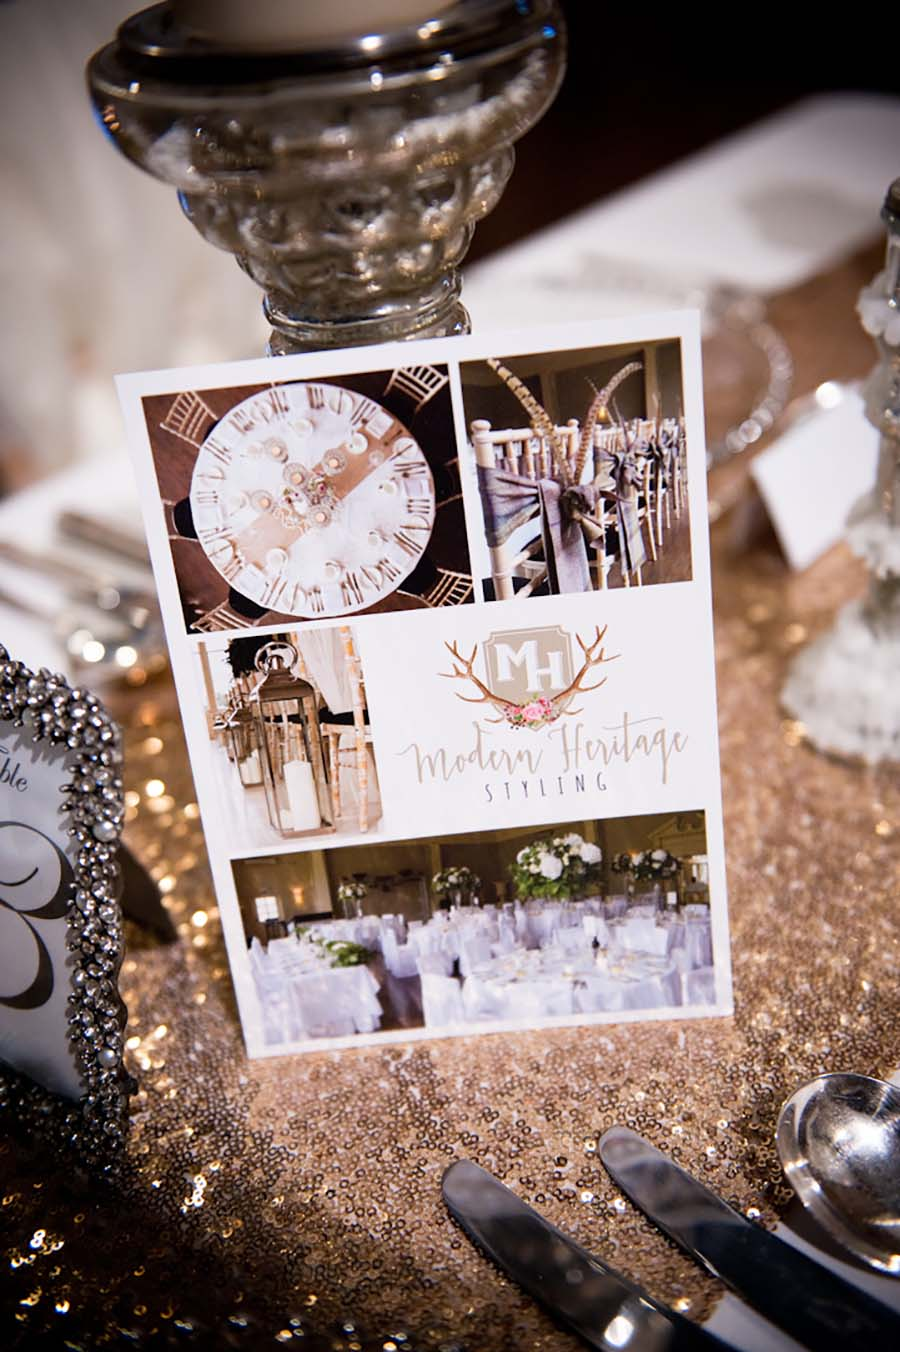 Buckinghams-at-belvoir-castle-wedding-fair-rachael-connerton-photography-45